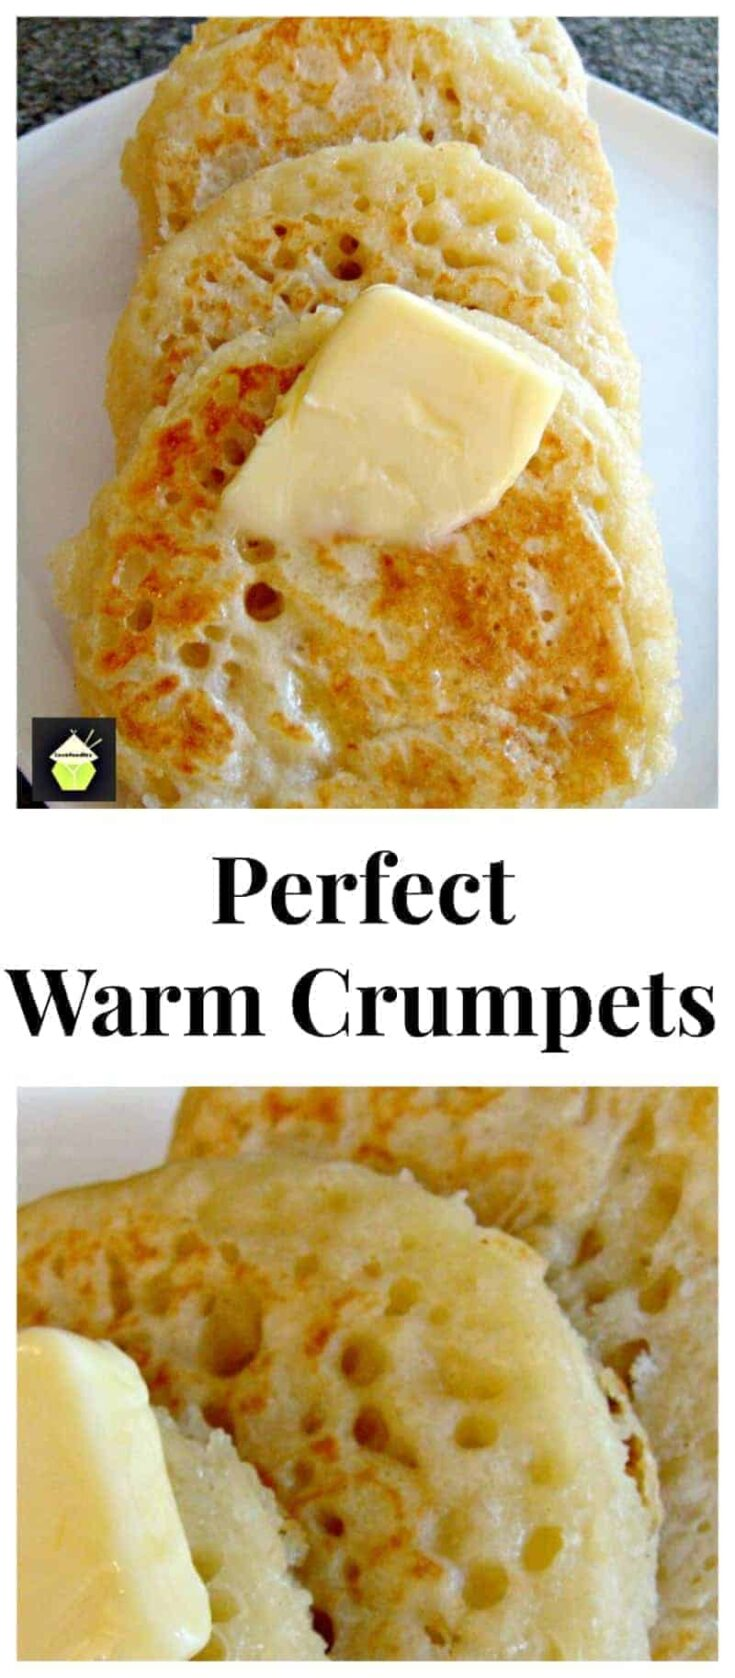 How to make English Crumpets from scratch|Delicious served for breakfast or afternoon tea|Crisp and golden brown on the outside, light and fluffy inside